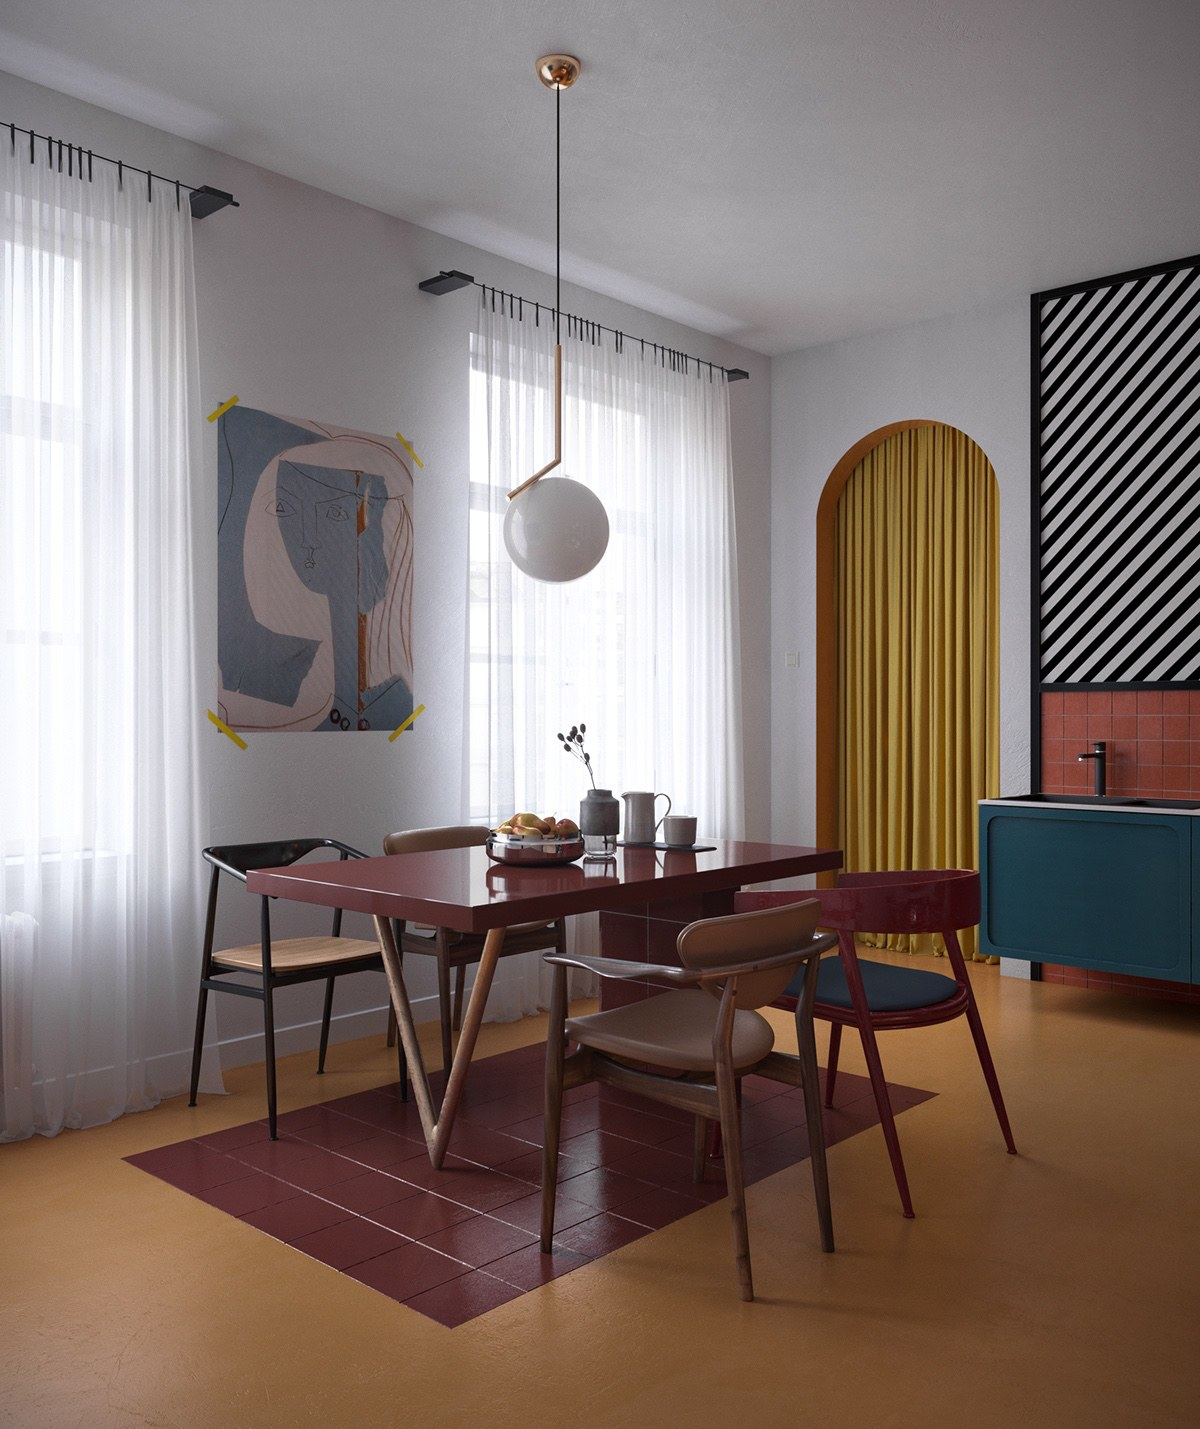 wall-poster-dining-tables-mismatched-chairs